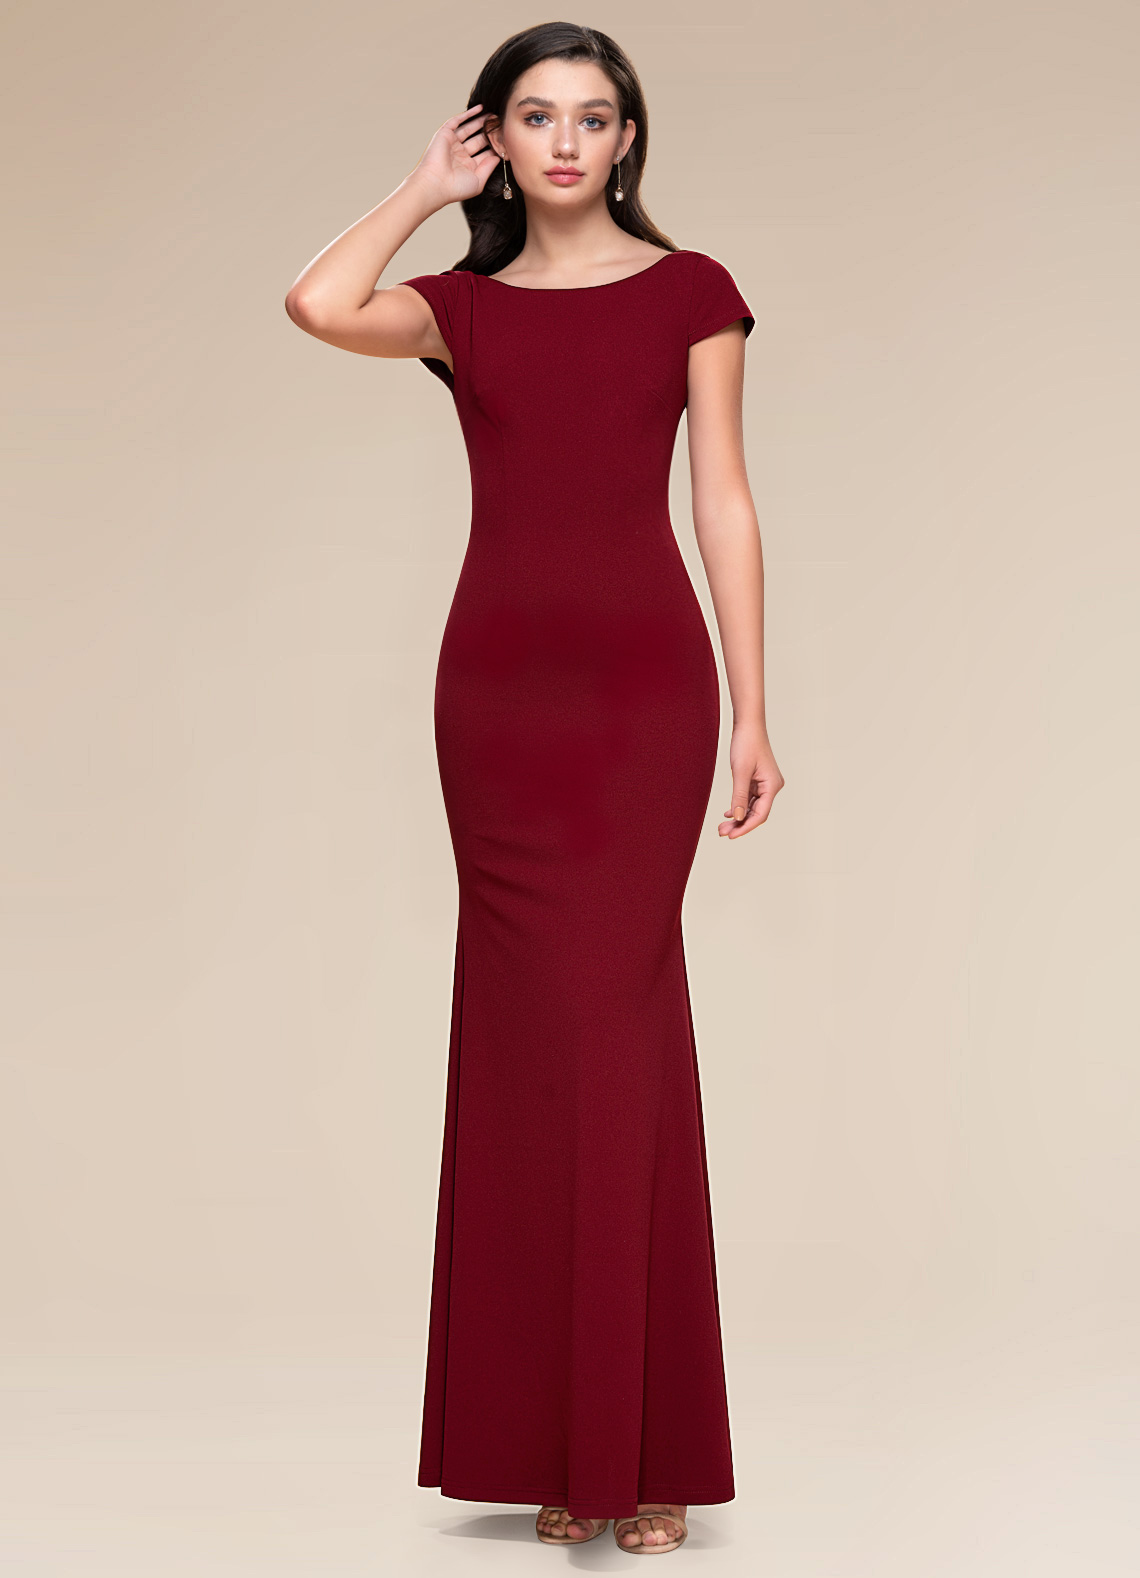 Pure Beauty Burgundy Stretch Crepe Maxi Dress